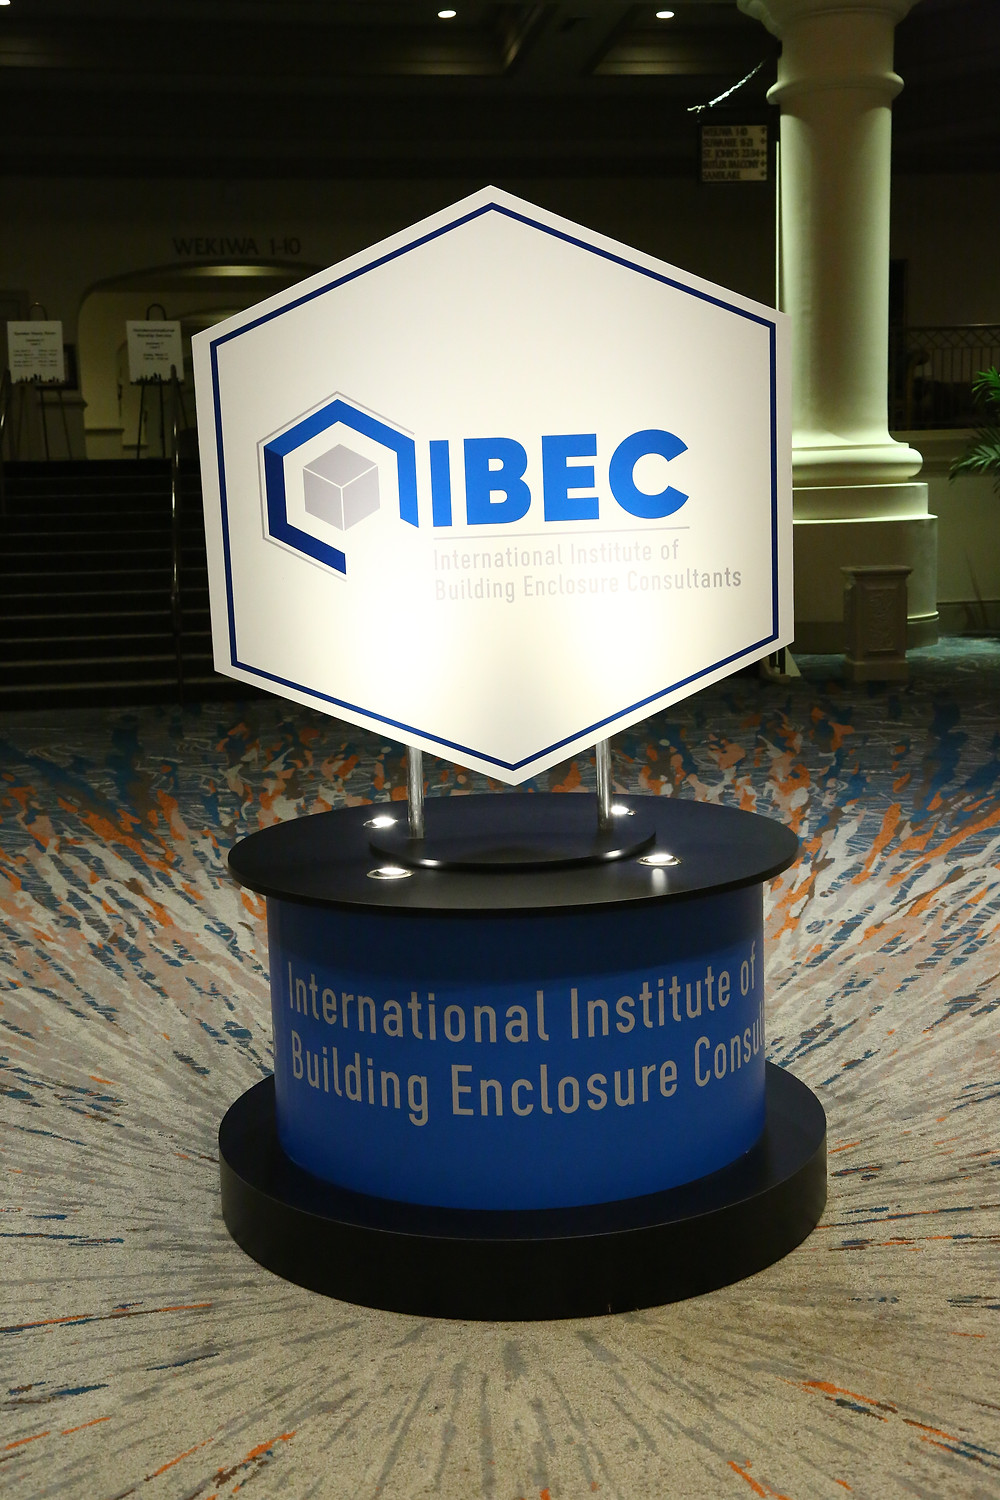 International Institute of Building Enclosure Consultants